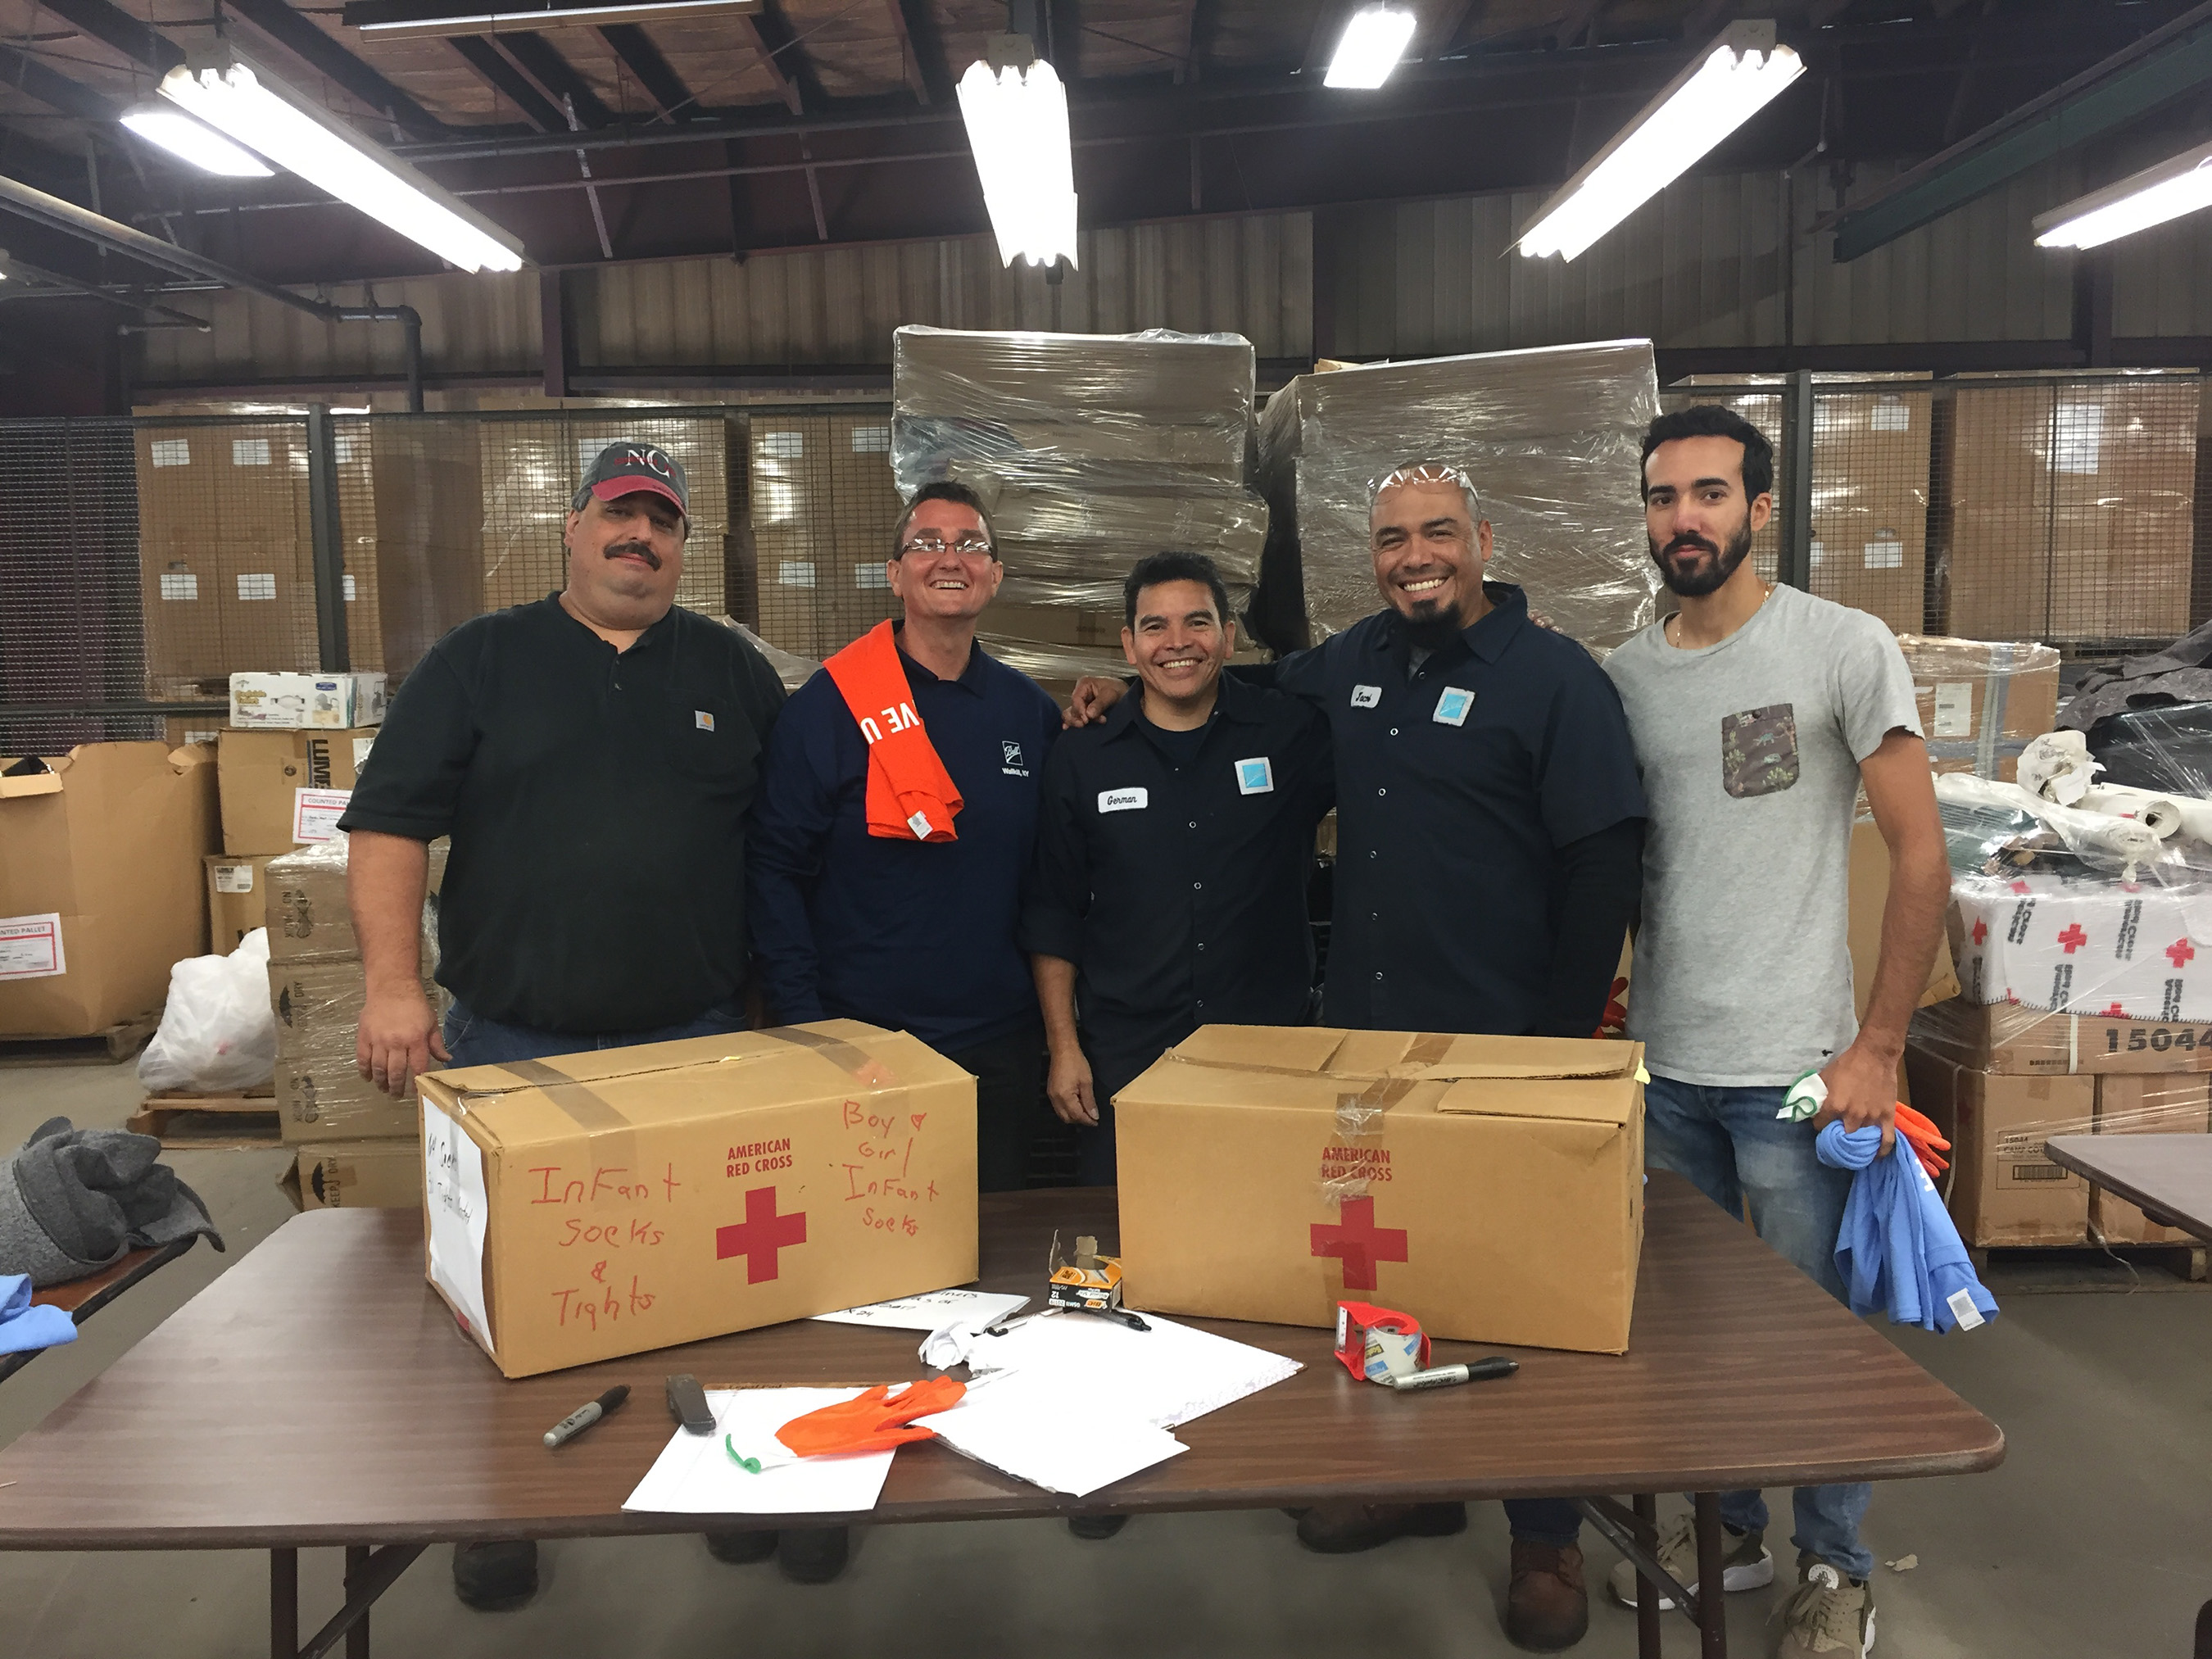 Employees from Ball's Wallkill, New York, beverage packaging manufacturing plant compiled care packages for the American Red Cross in their community as part of the 9/11 Day of Remembrance.